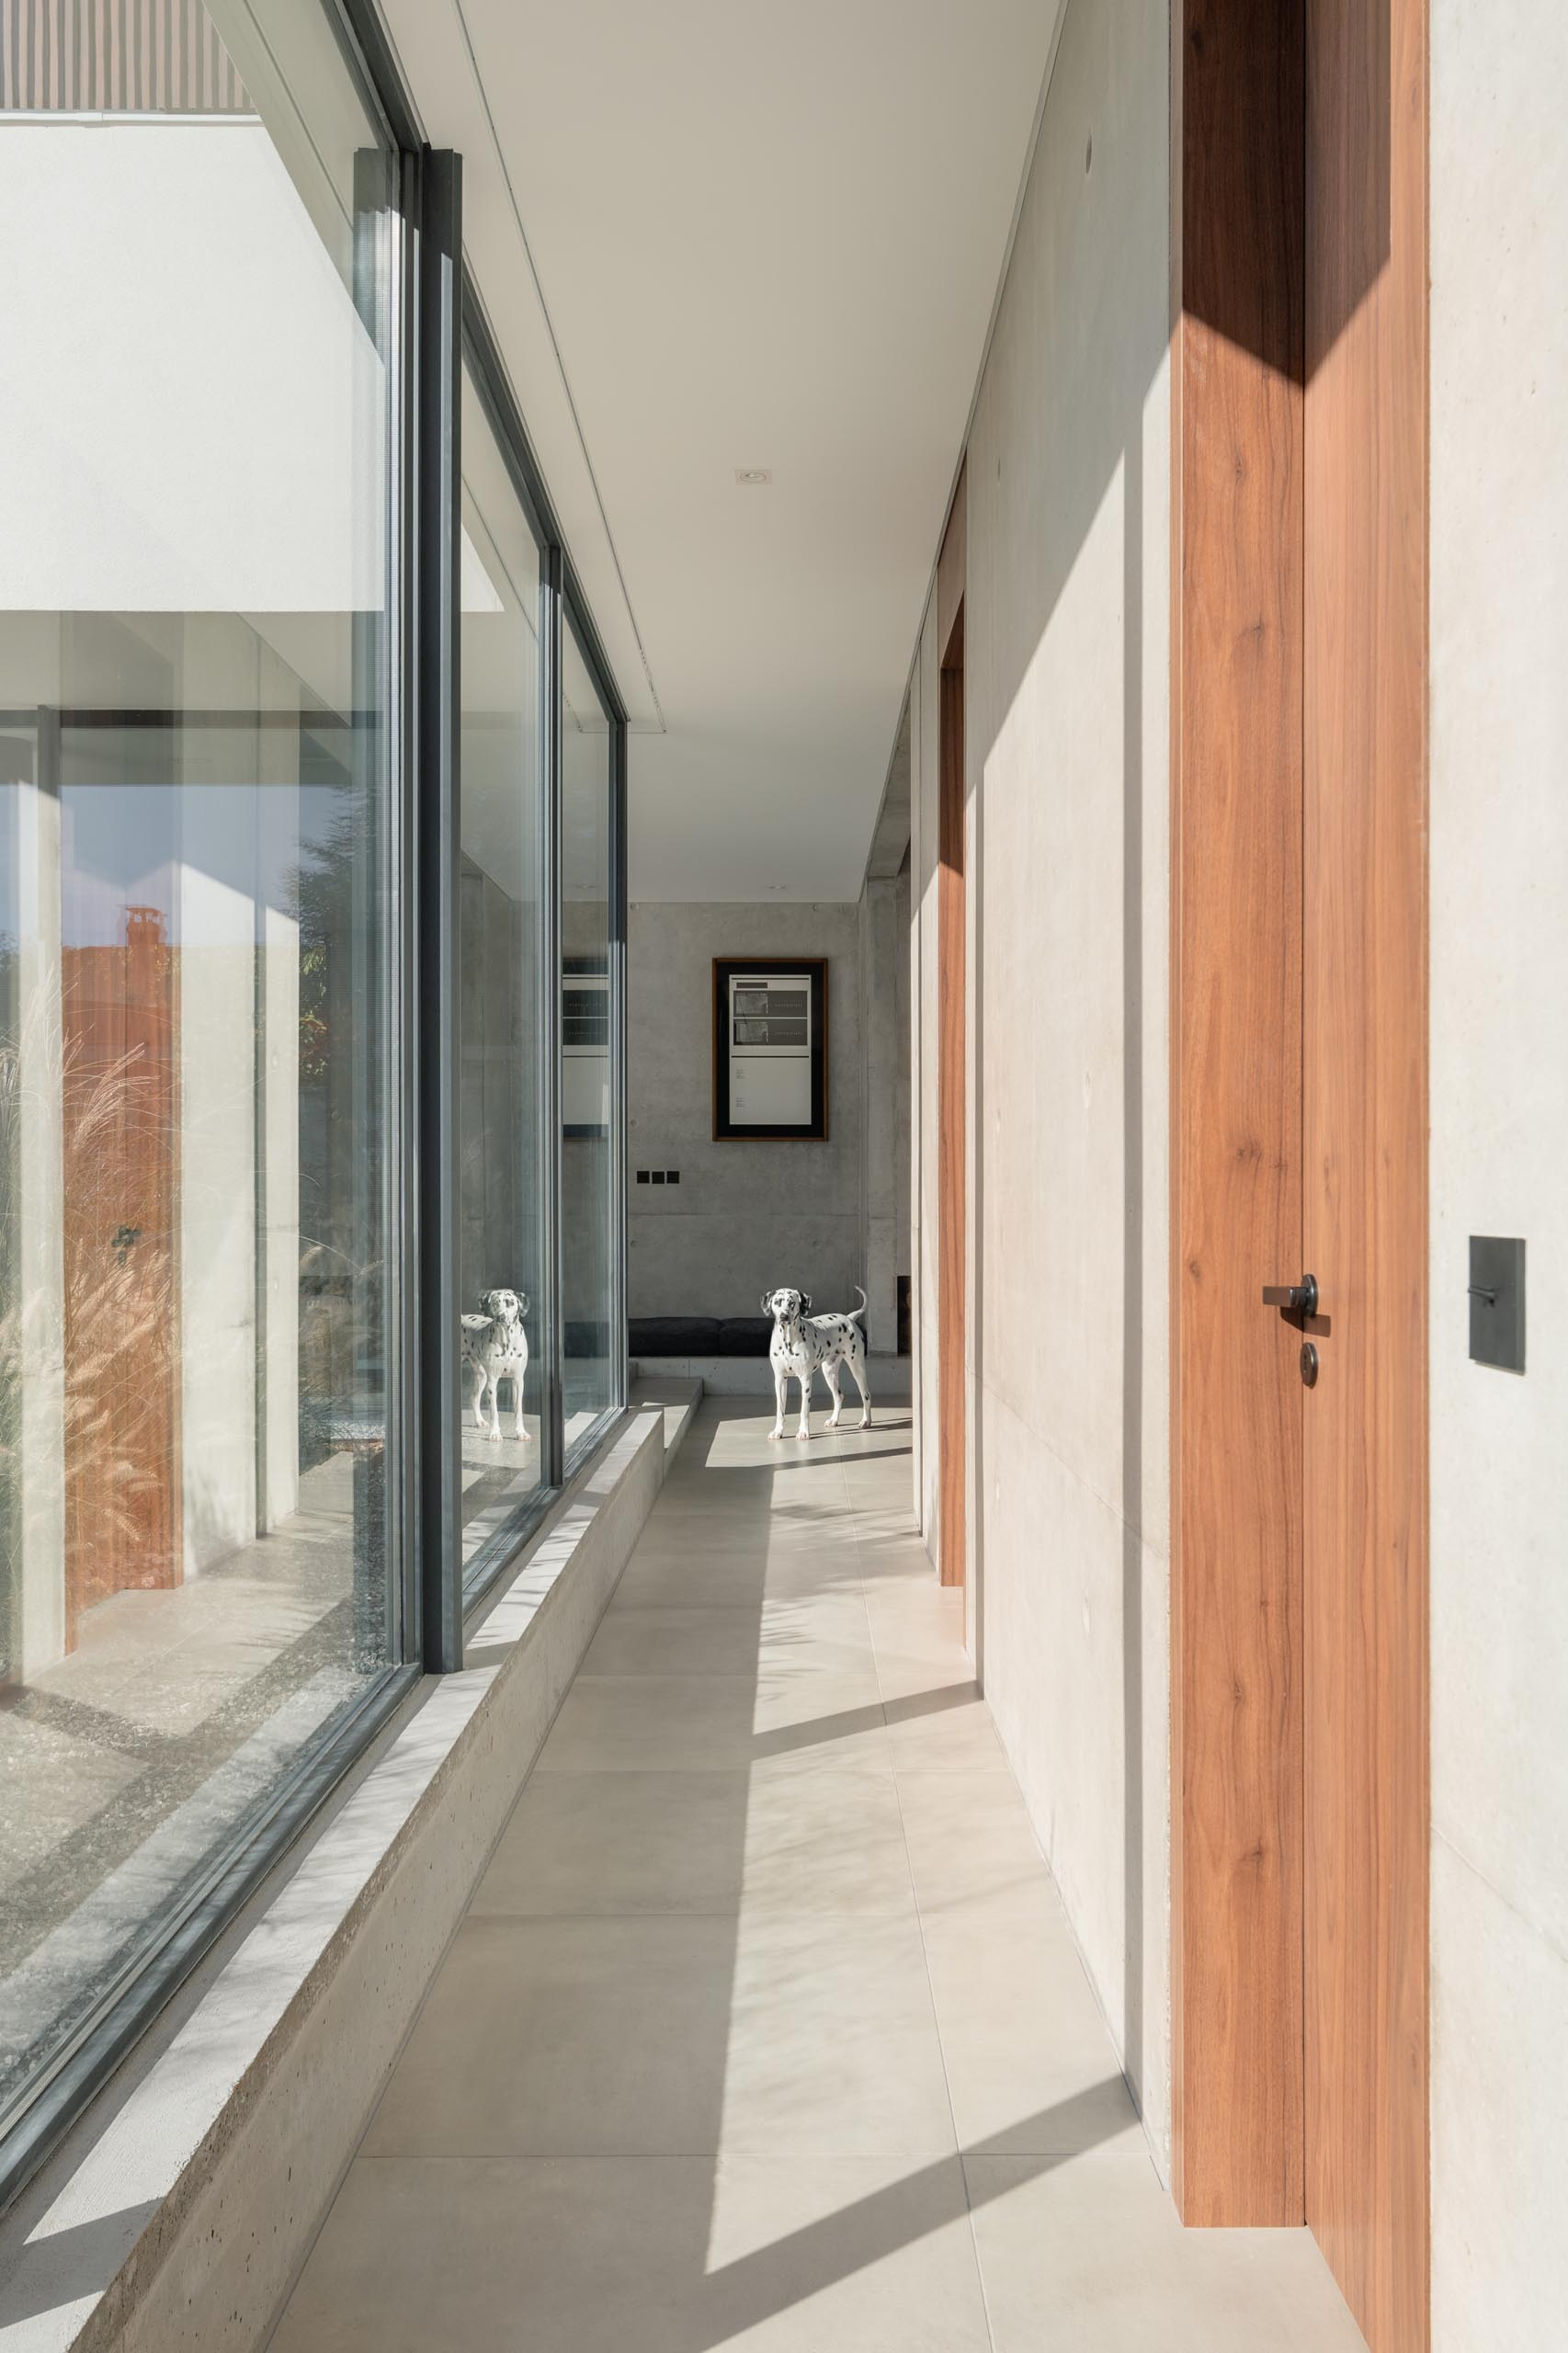 Floor-to-ceiling windows line this modern hallway and add plenty of natural light.